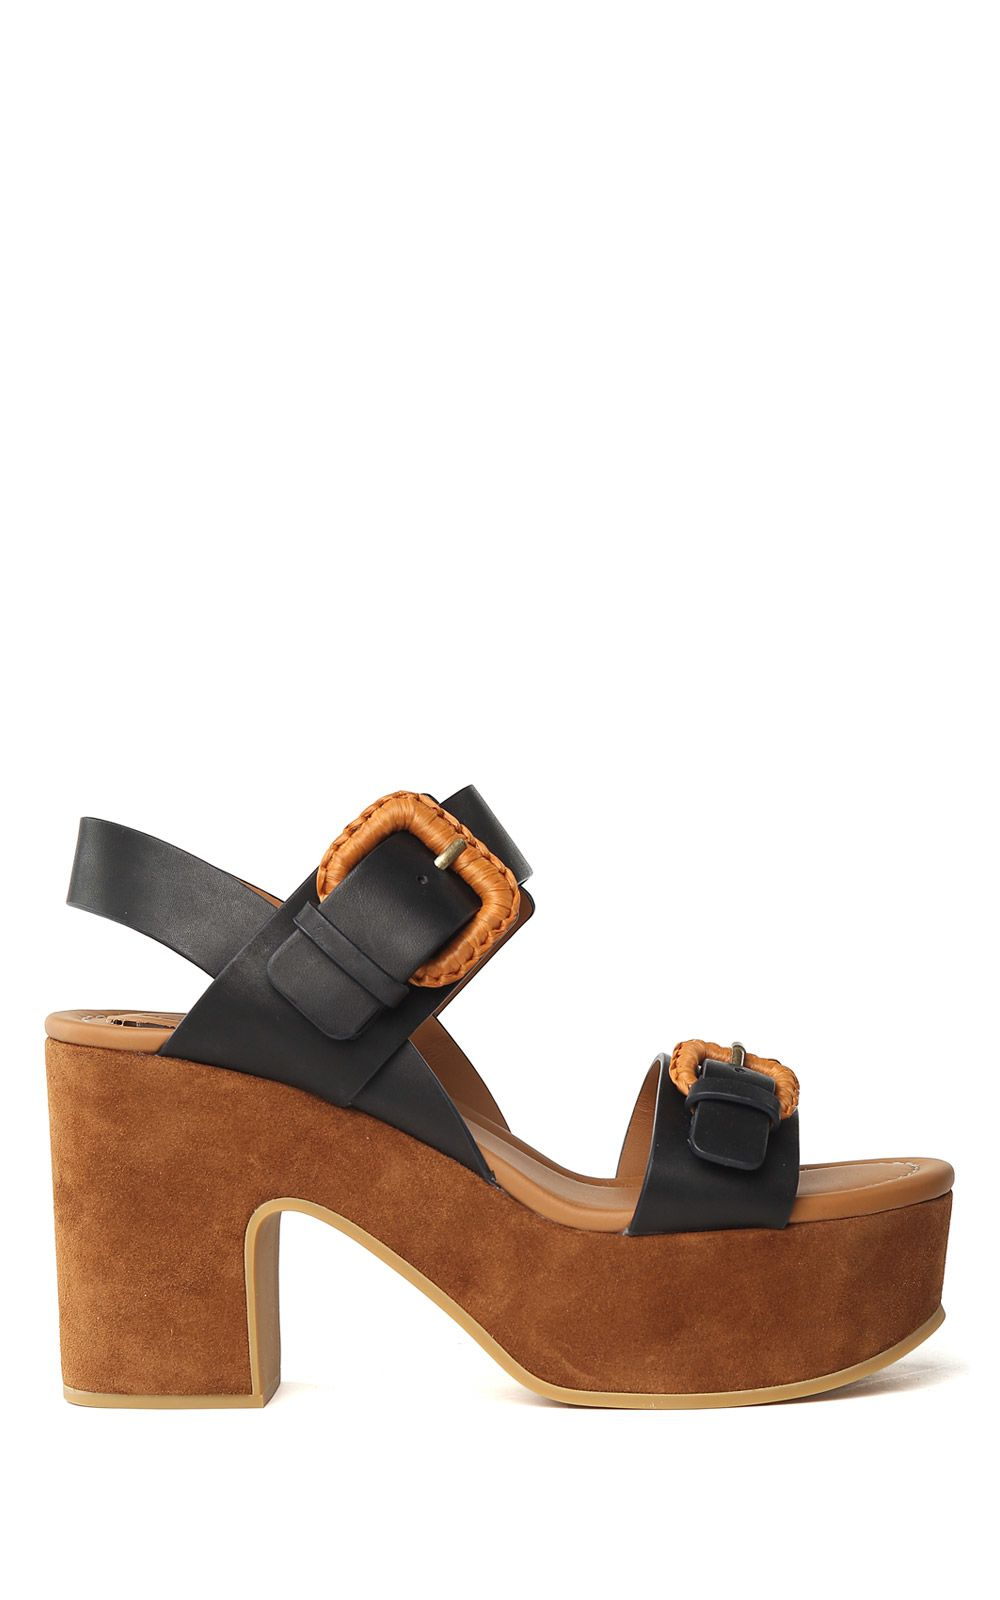 Chloé See By Chloé Woman Suede-trimmed Leather Platform Sandals Size 40